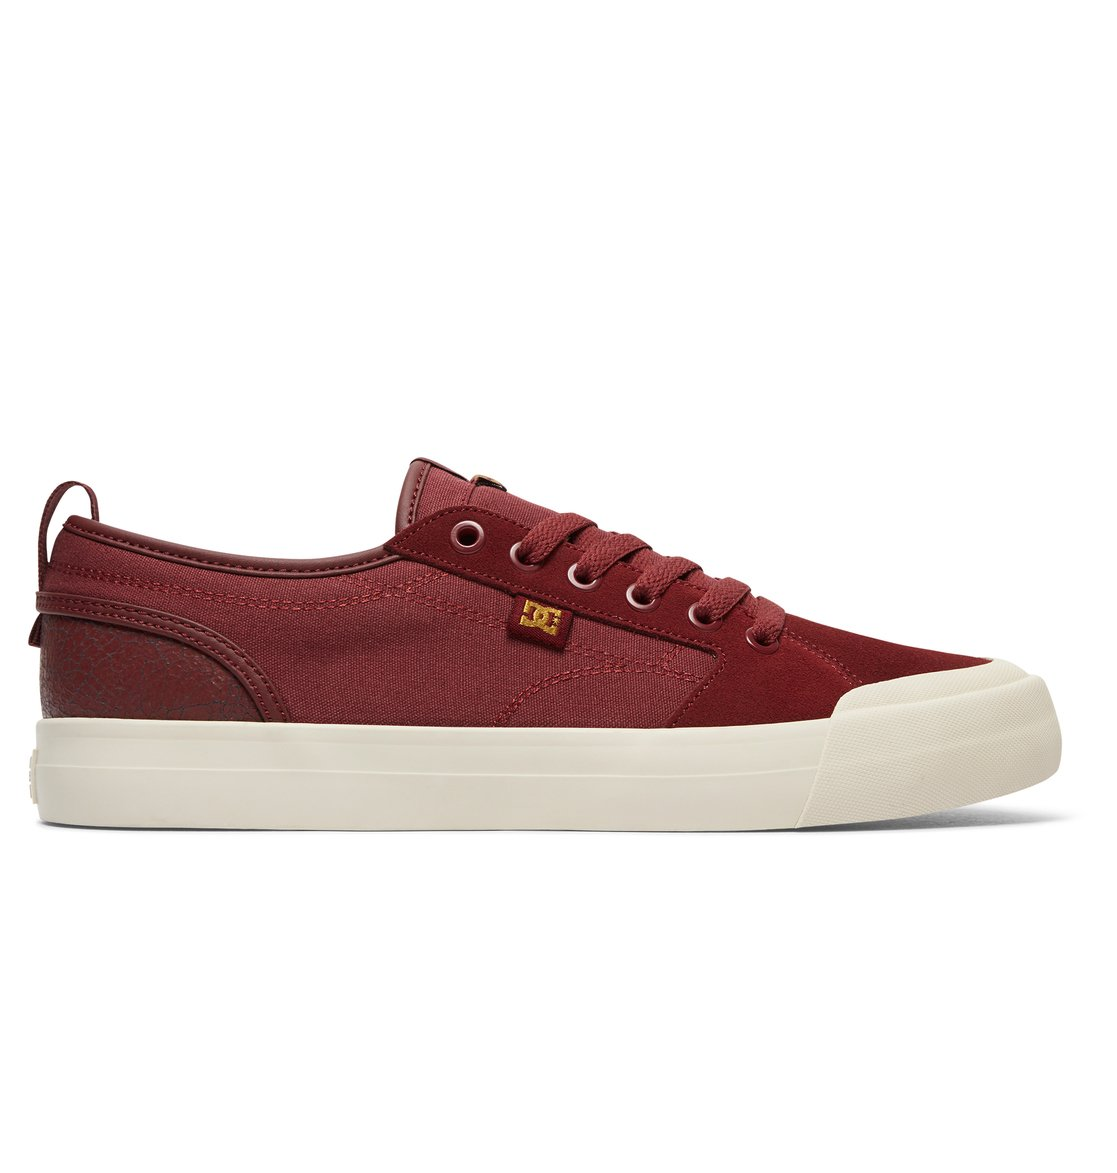 Evan Smith Chaussures pour Homme